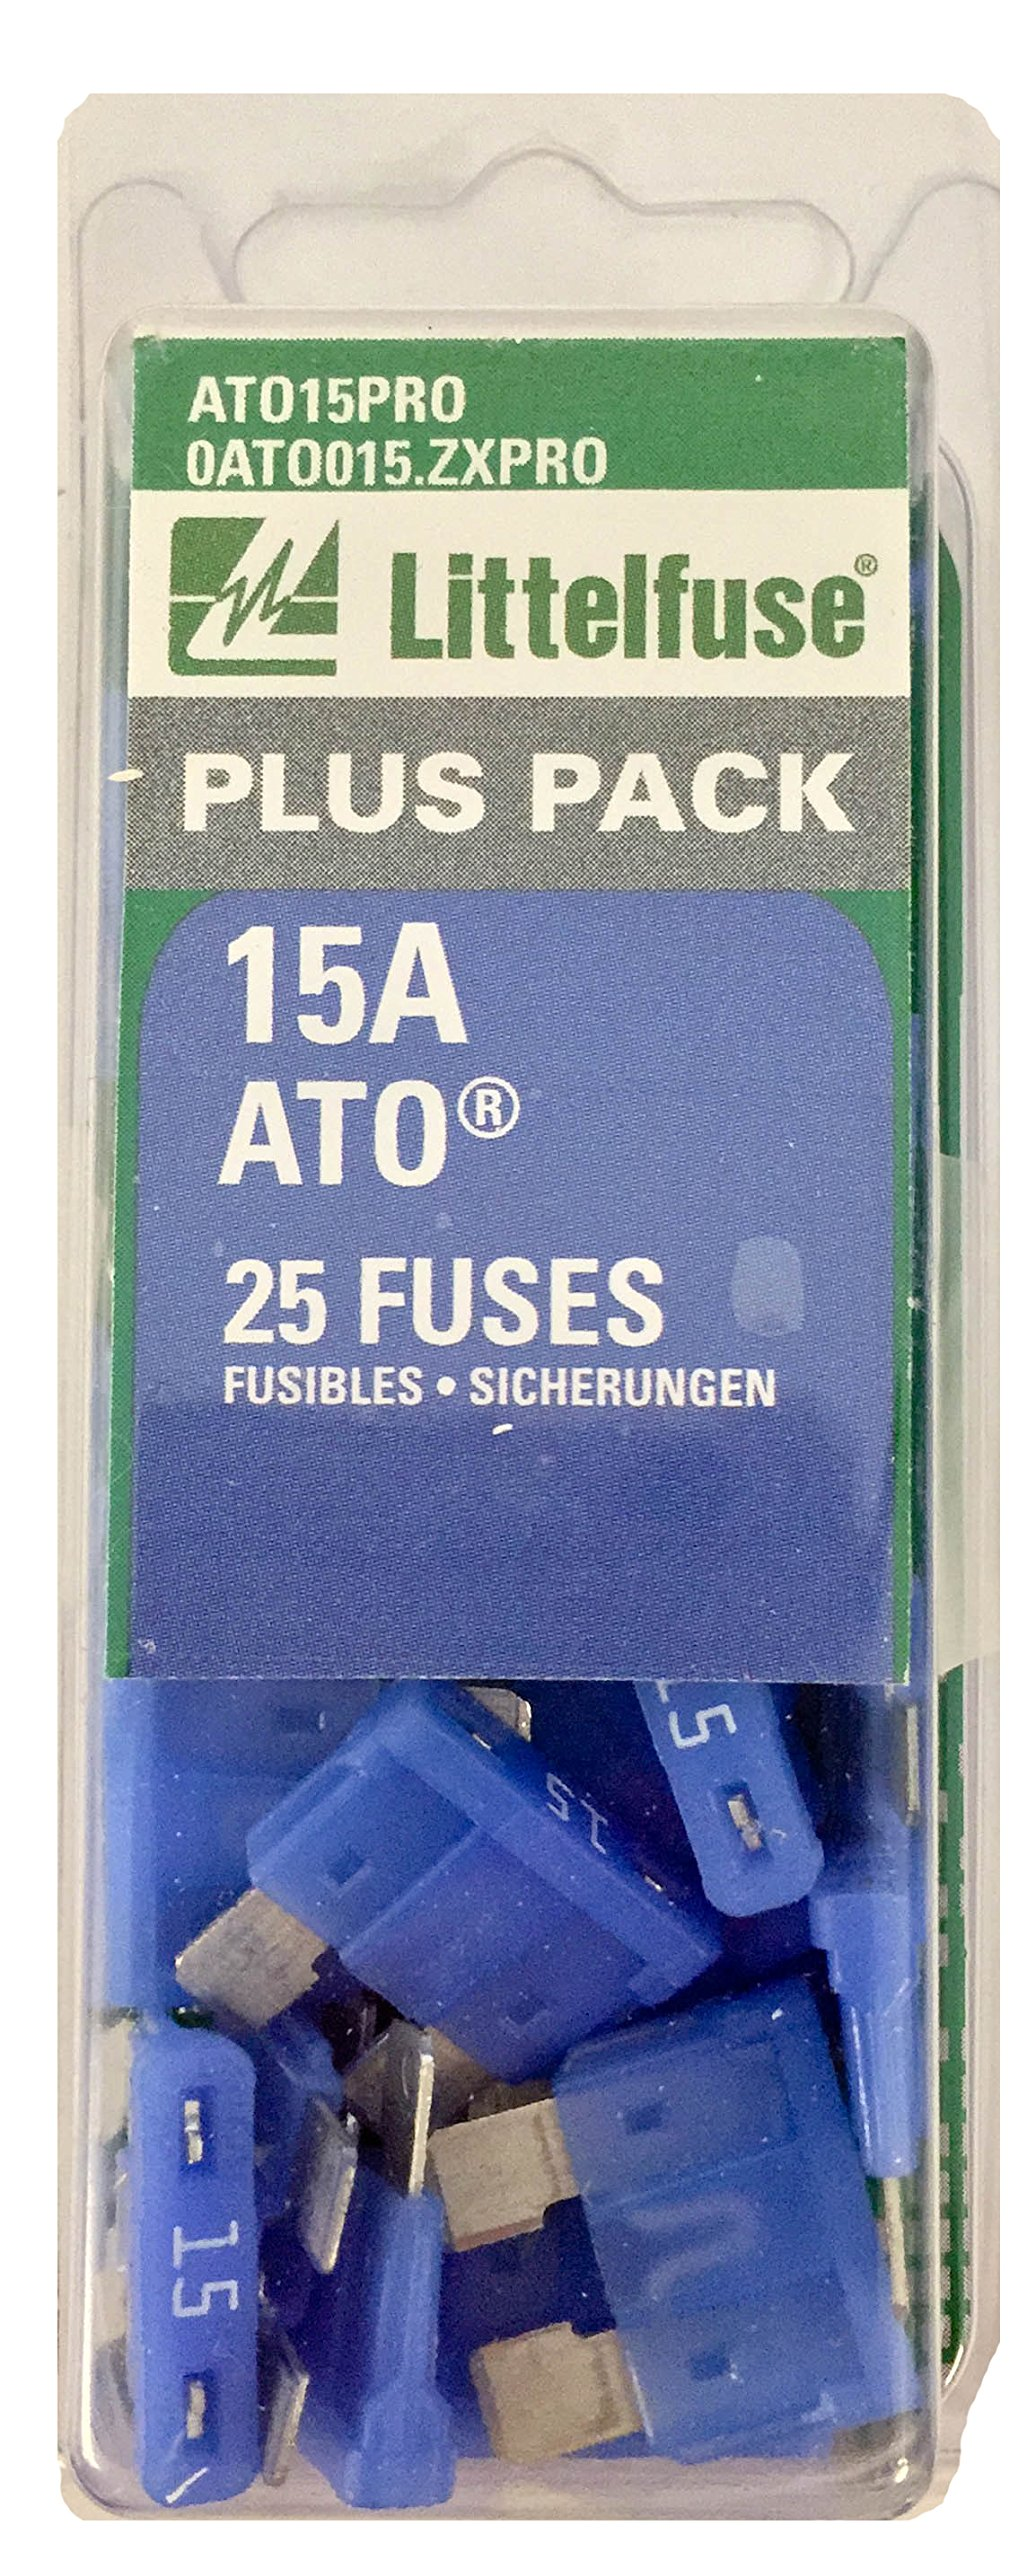 Littelfuse Ato15pro Ato Bp Pro Fast Acting Automotive Blade Fuse Box Holder 25 Piece